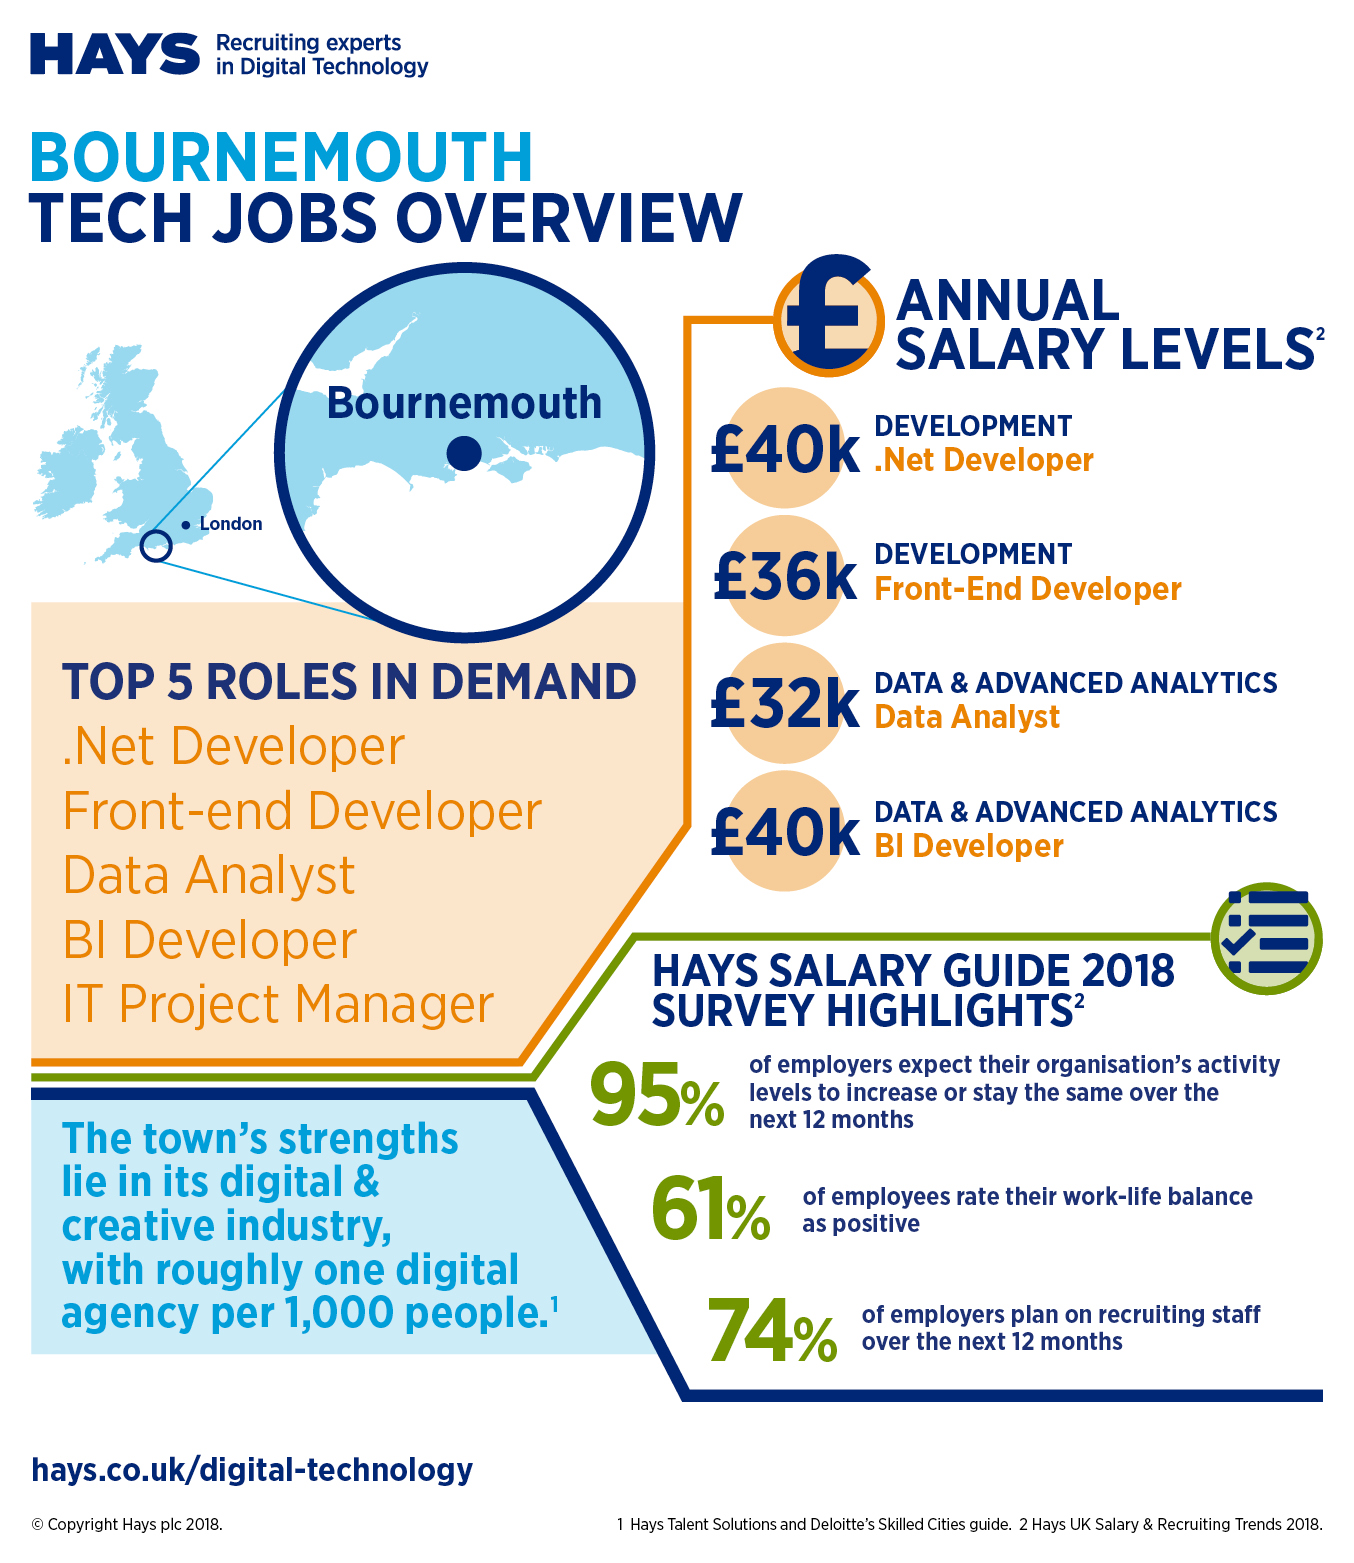 Hays Bournemouth salary infographic